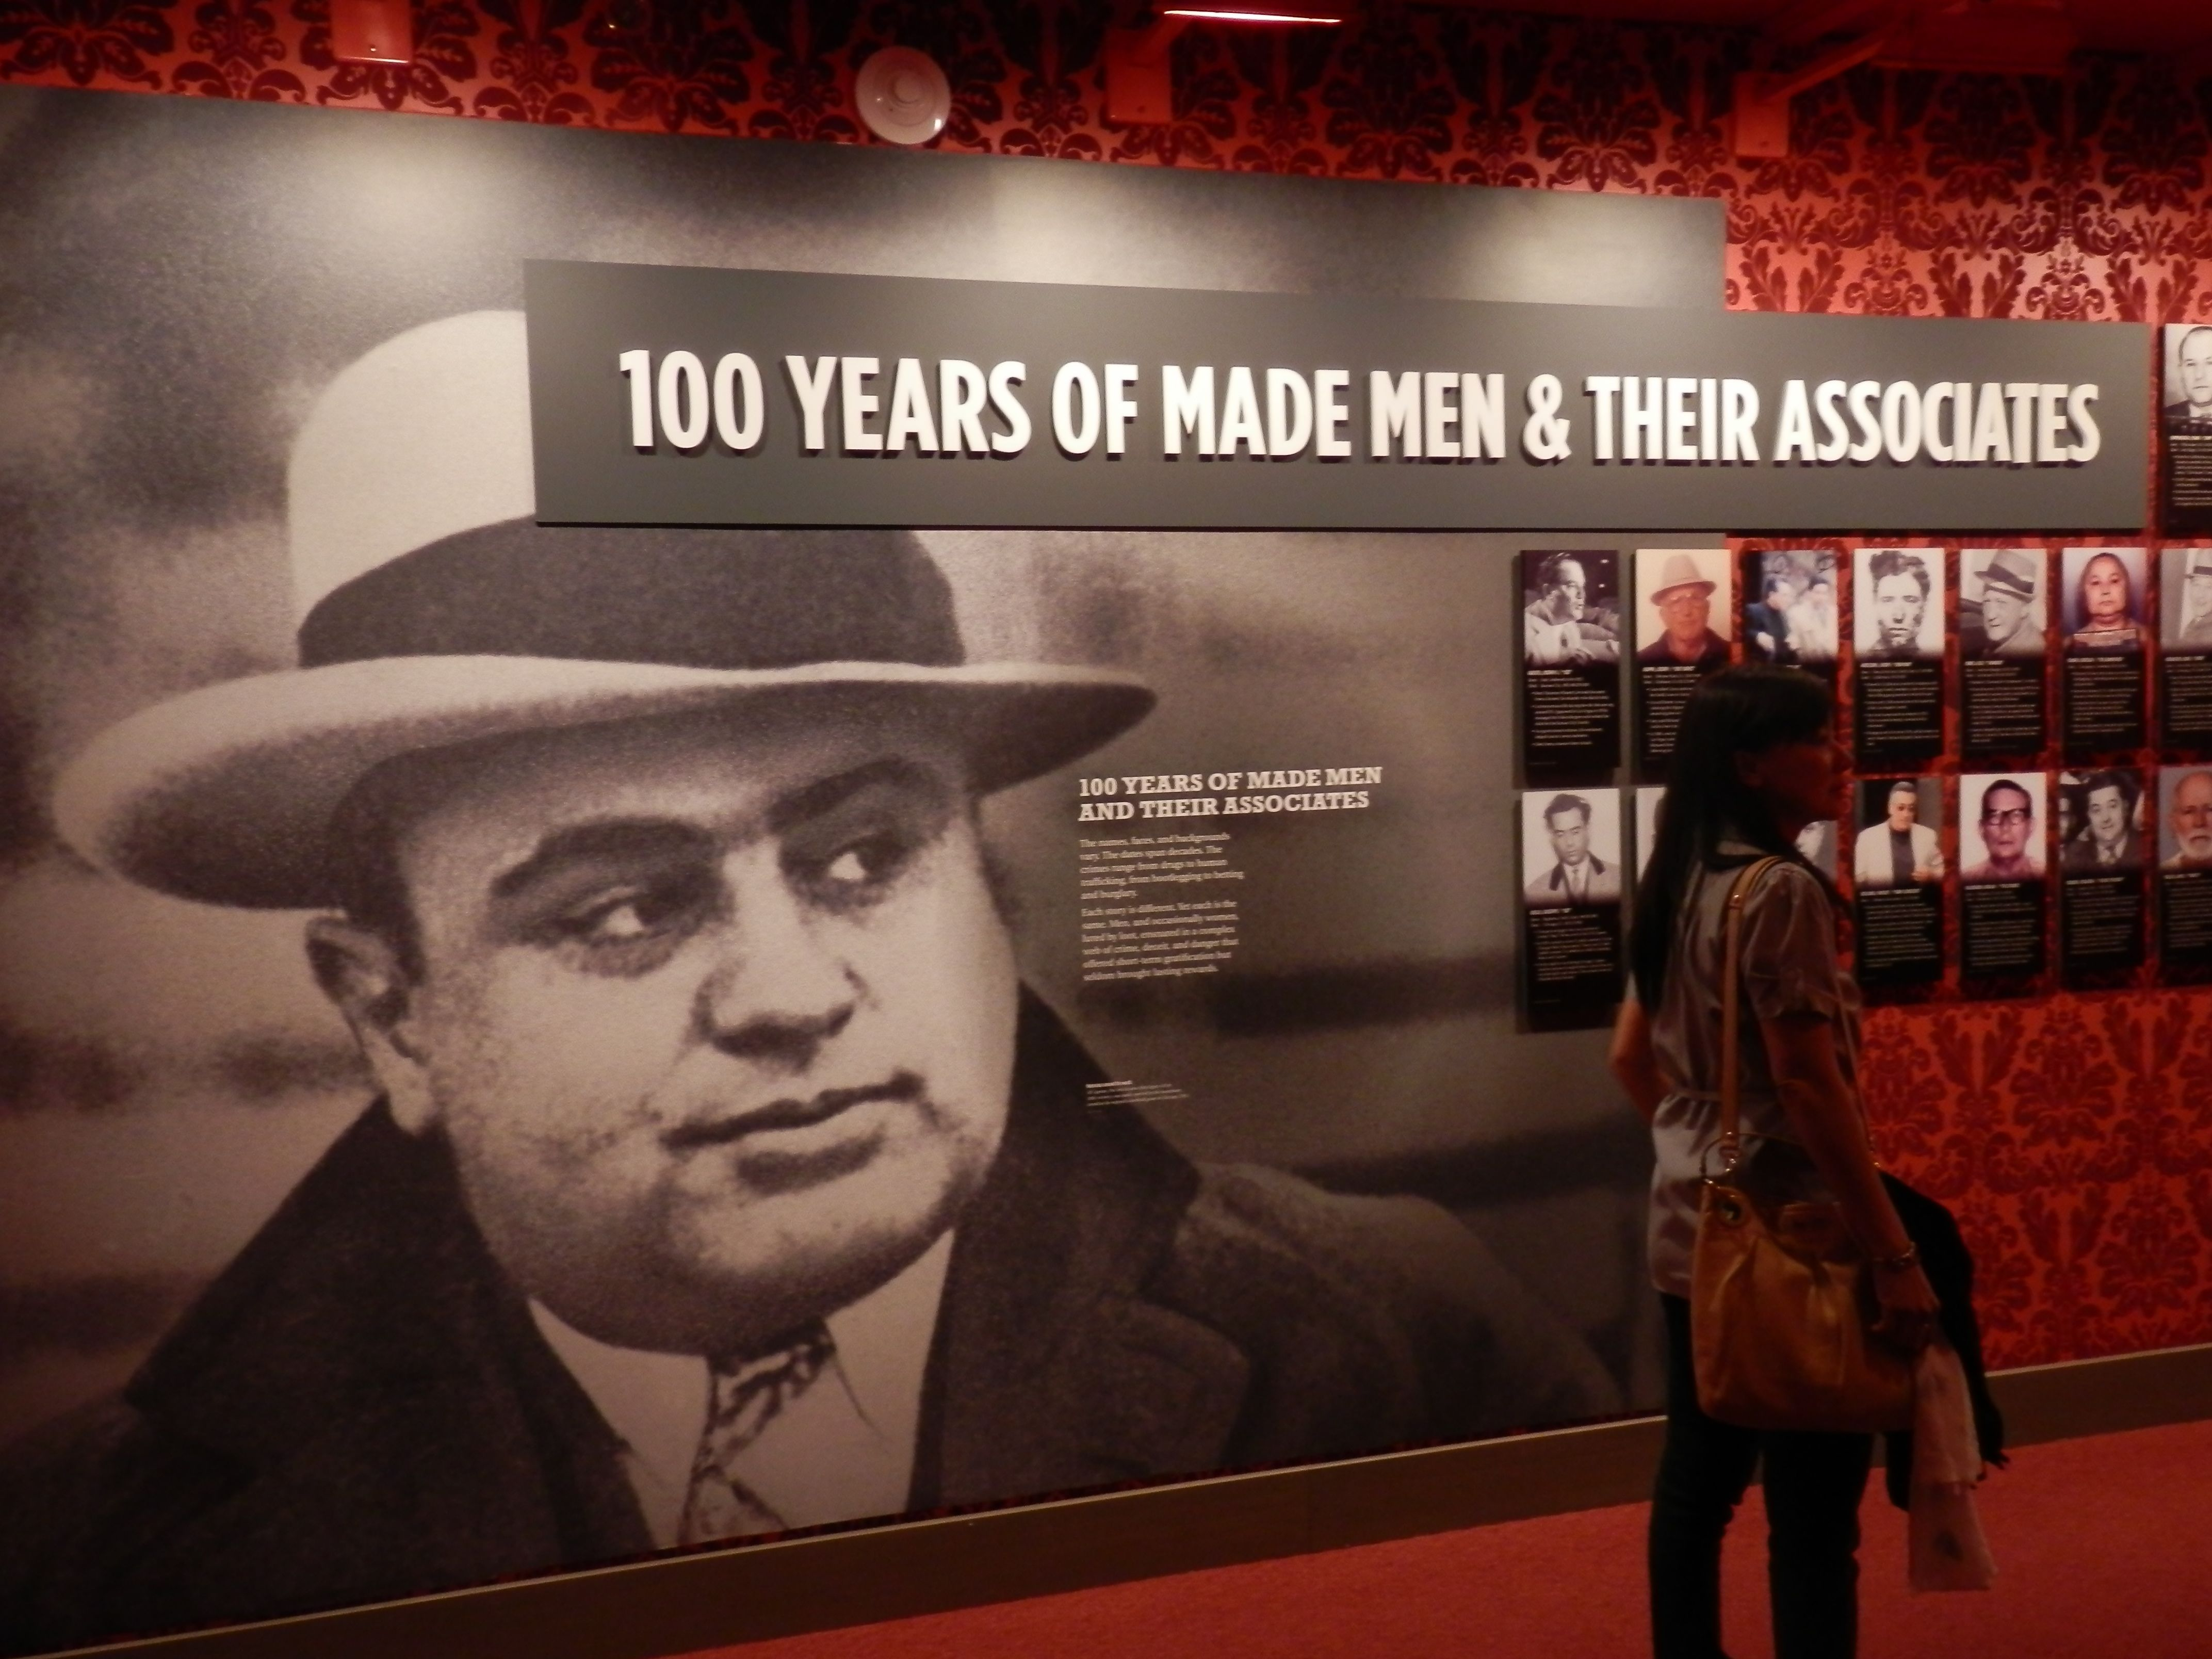 an overview of the life of al capone a famous american mobster Al capone (a 'scarface'), one of the most famous american gangsters, rose find this pin and more on al capone by billydoebler al capone biography - facts, birthday, life.